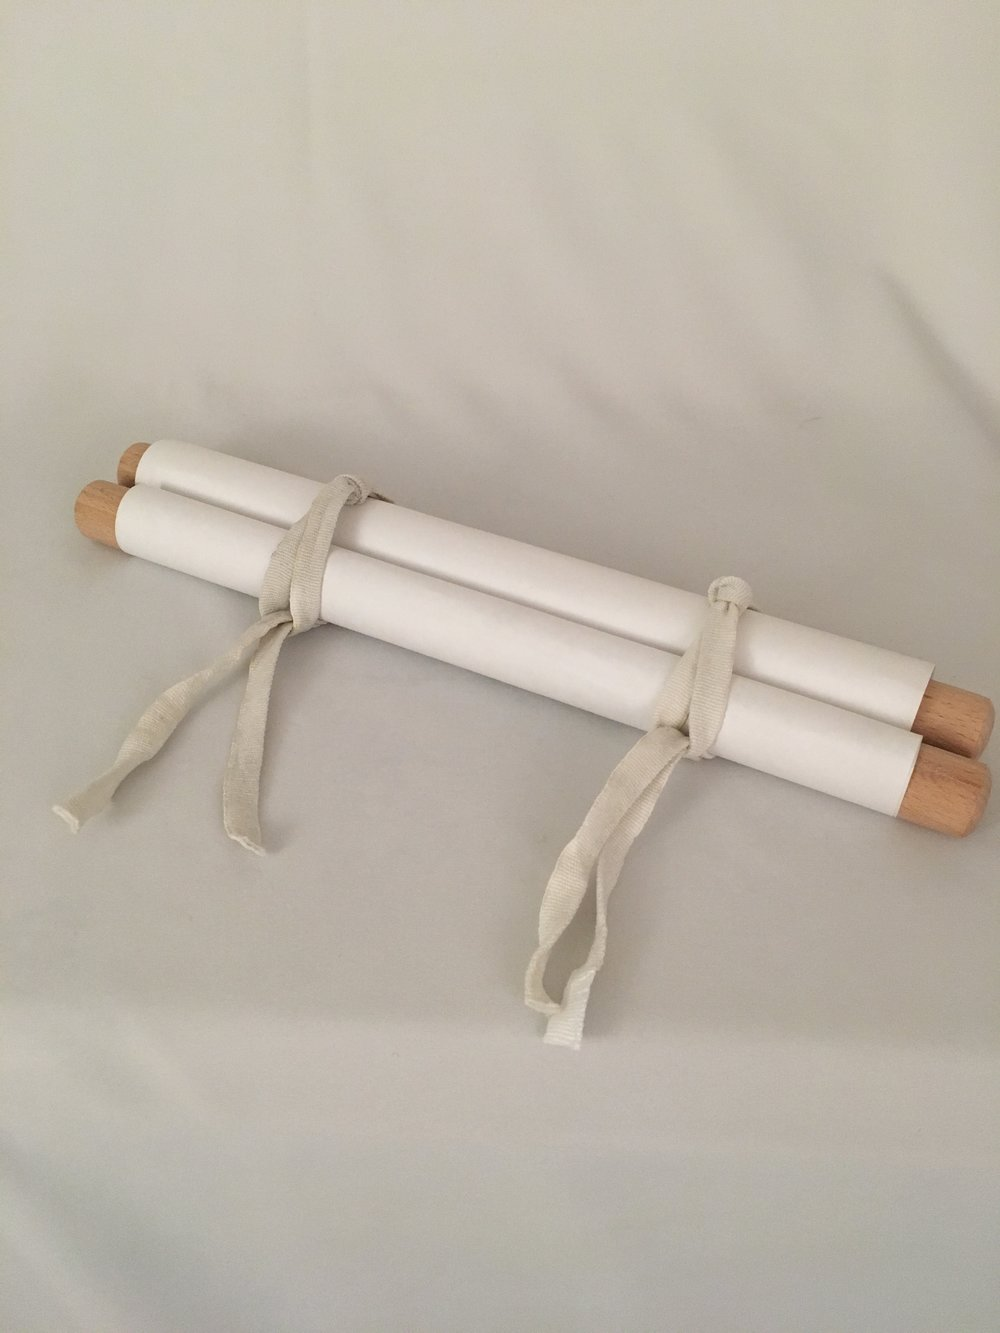 Rolling Pins inspired by Difference